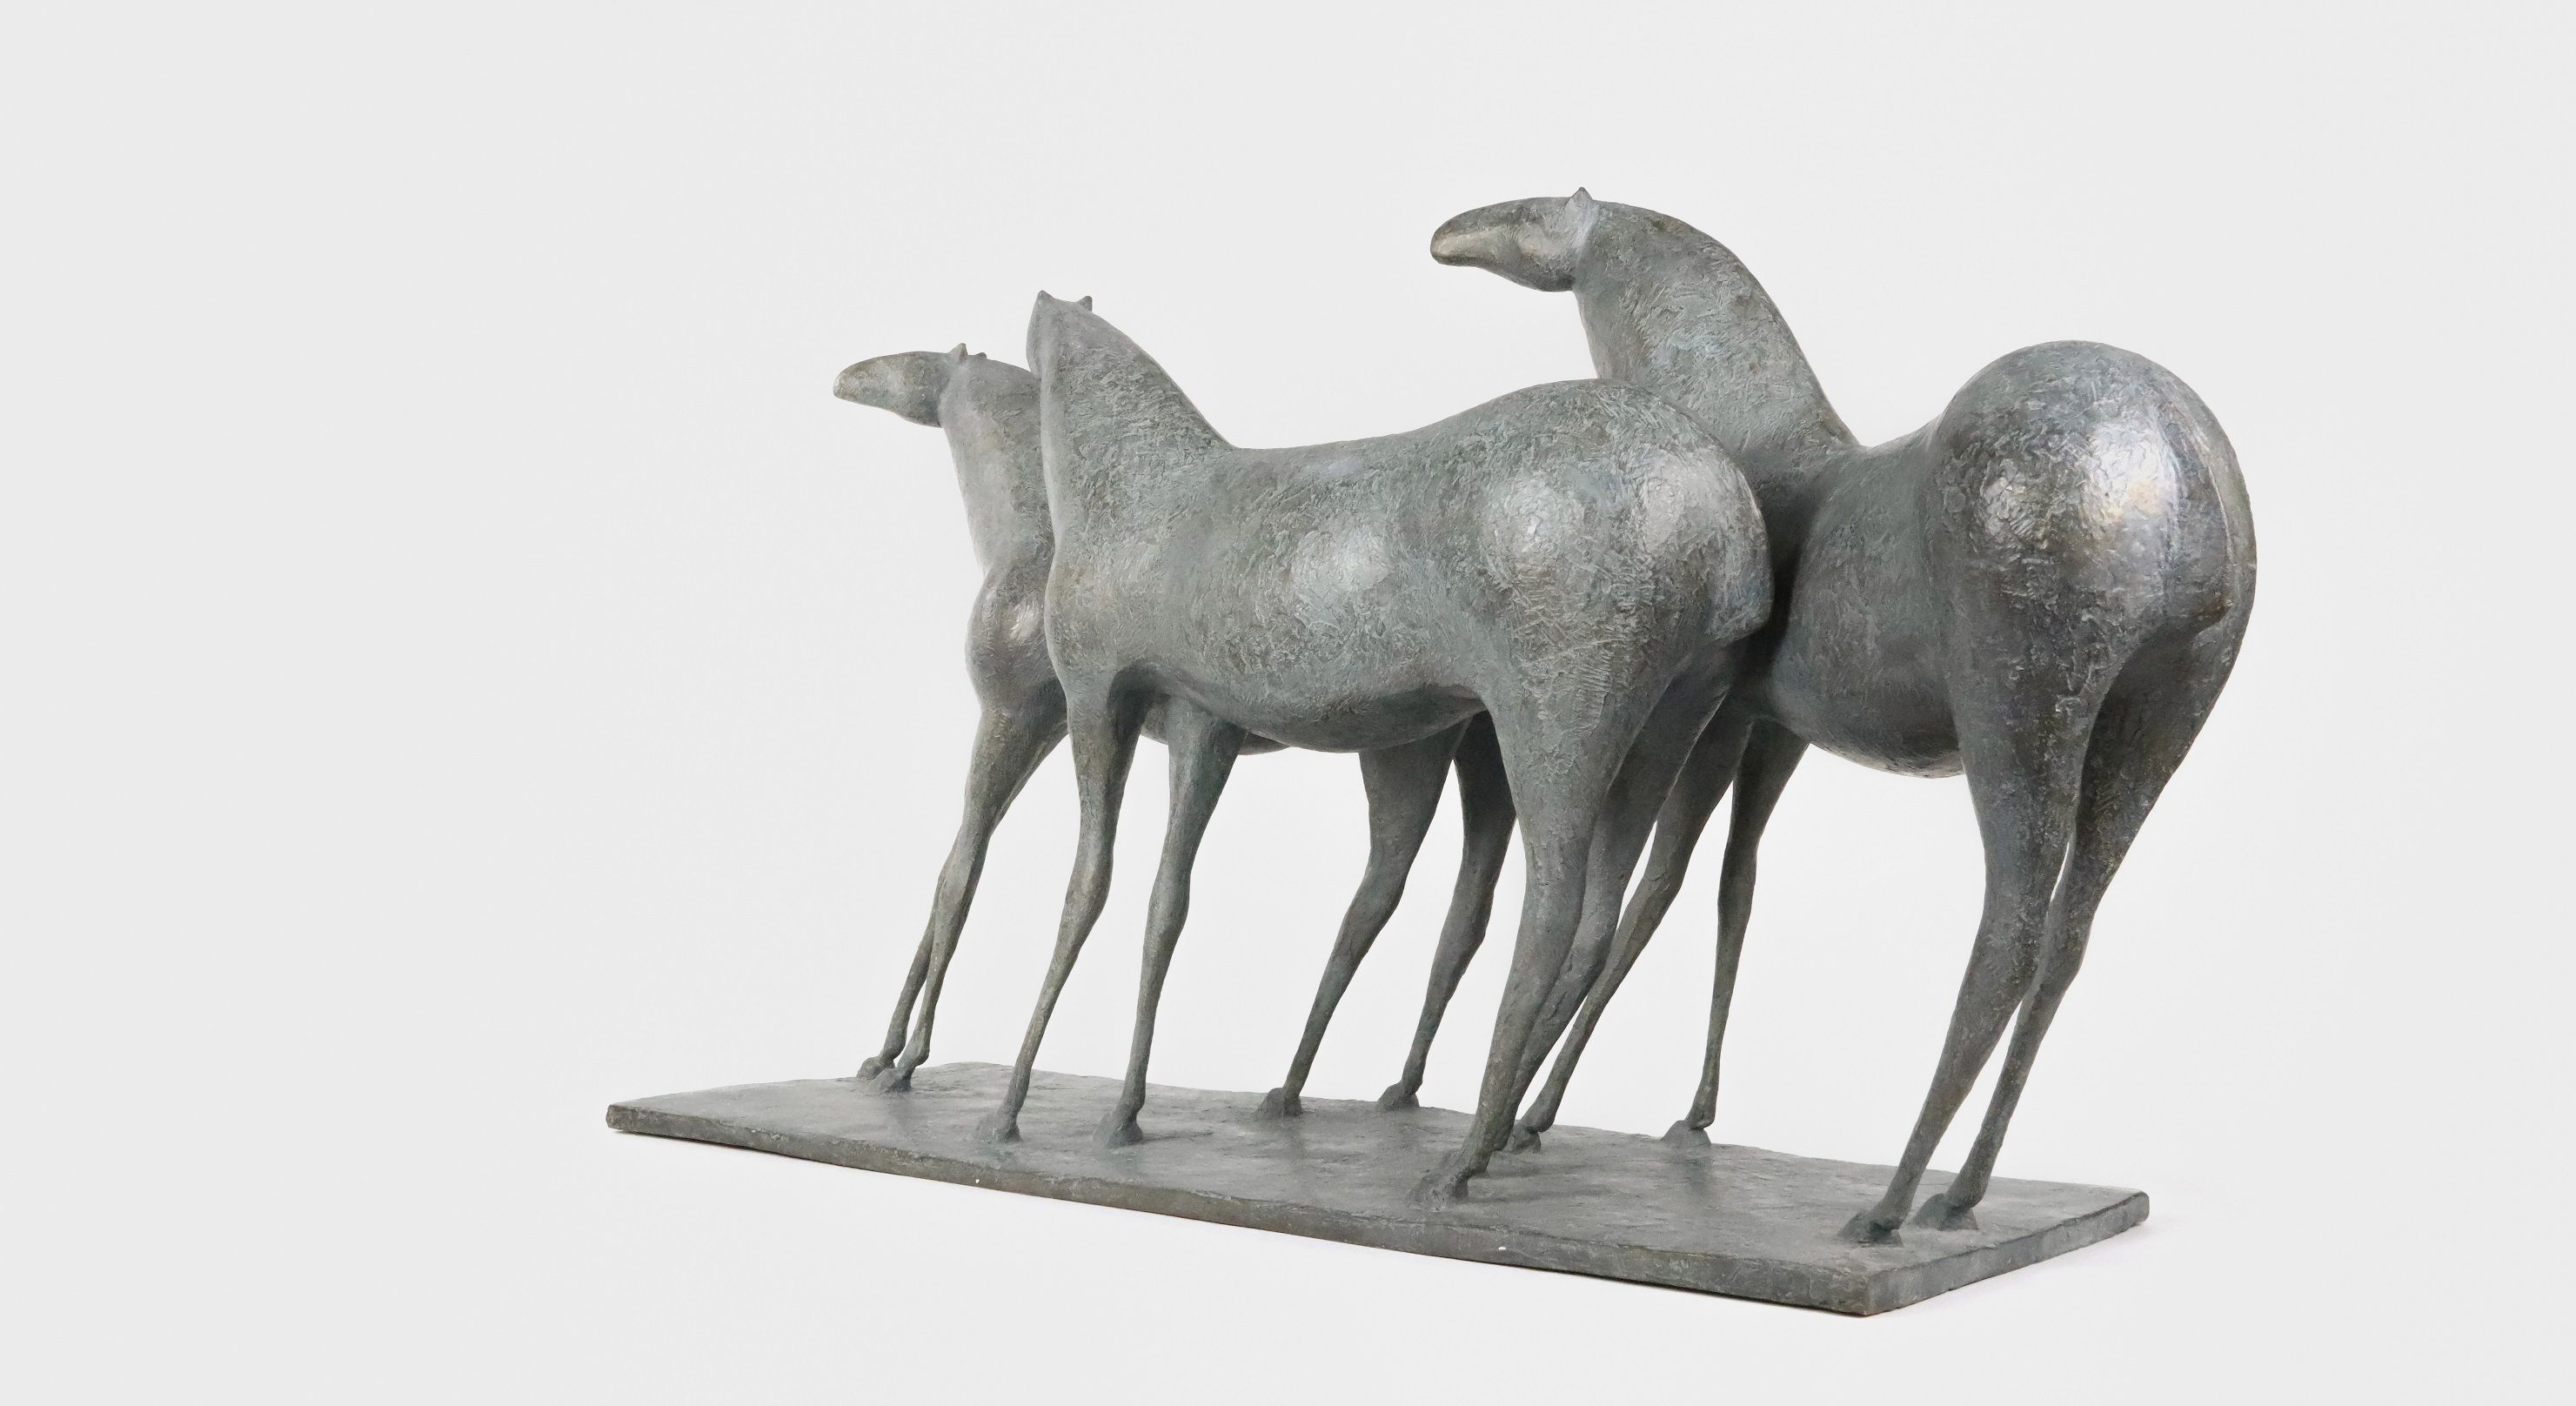 3 Chevaux, Pierre Yermia,Sculpture contemporaine, detail 4